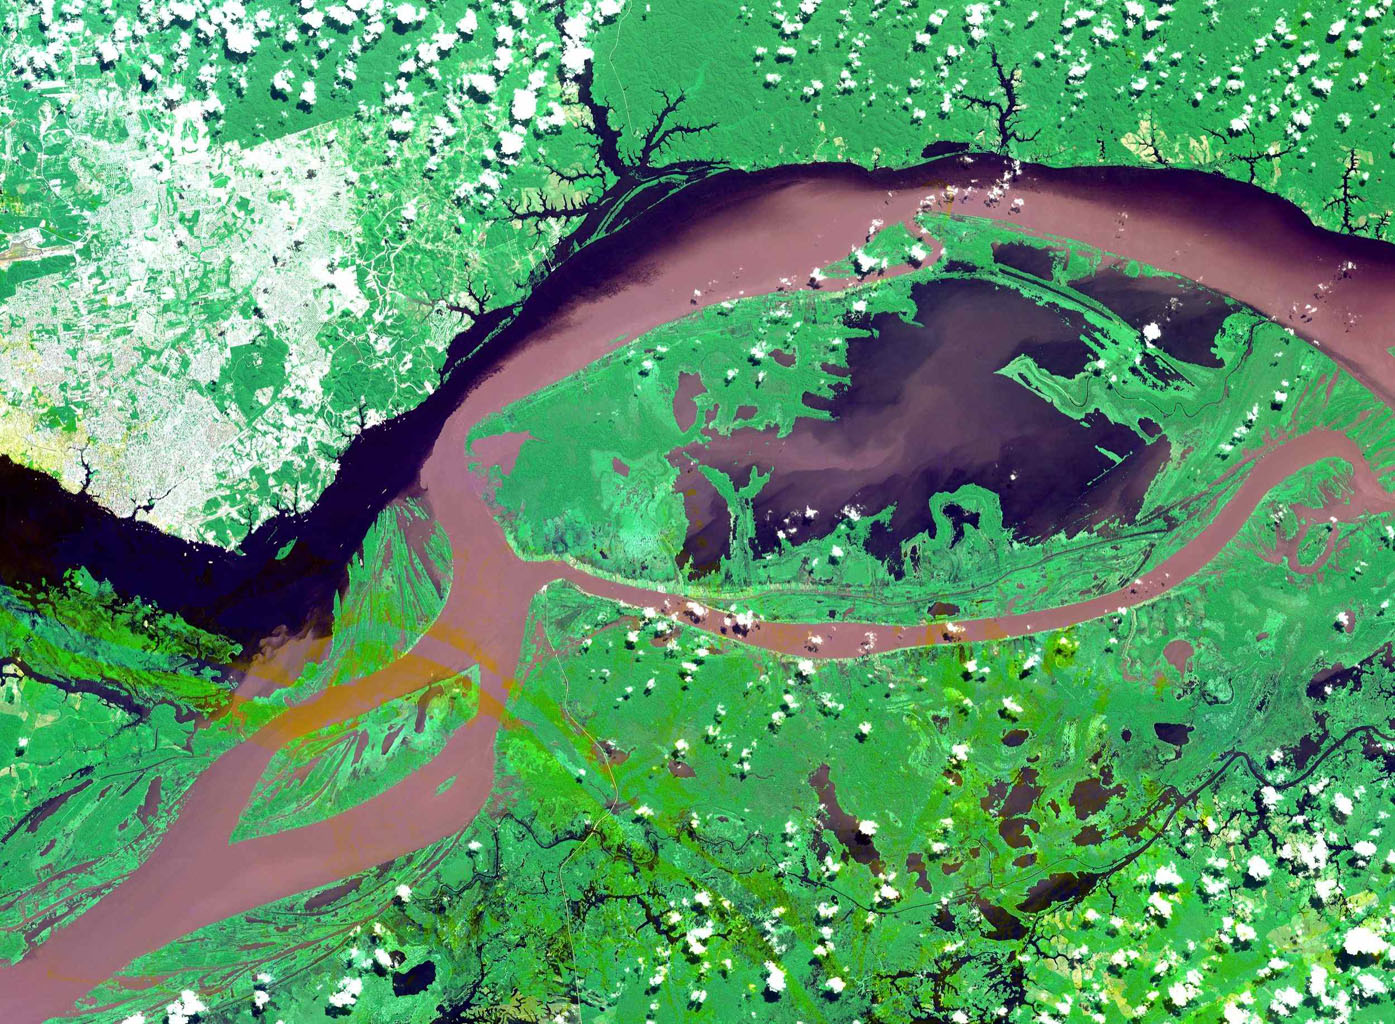 This image from NASA's Terra spacecraft shows the junctions of the Amazon and the Rio Negro Rivers at Manaus, Brazil.